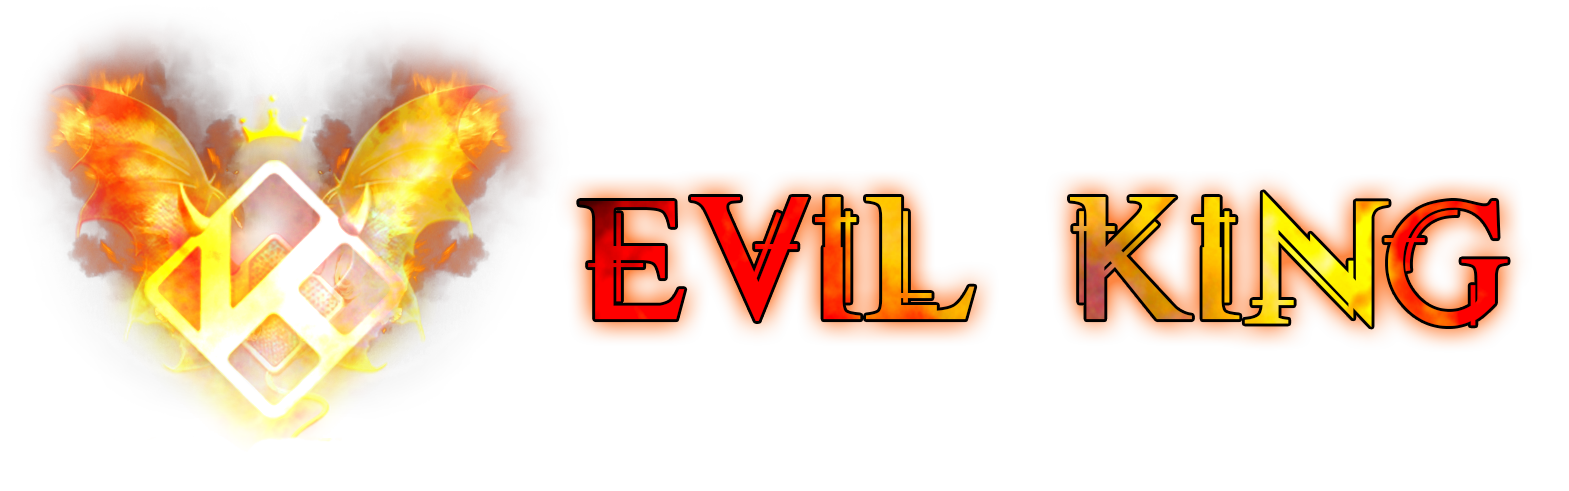 Evil King 5.0: ecco il Download dello .zip per KODI!